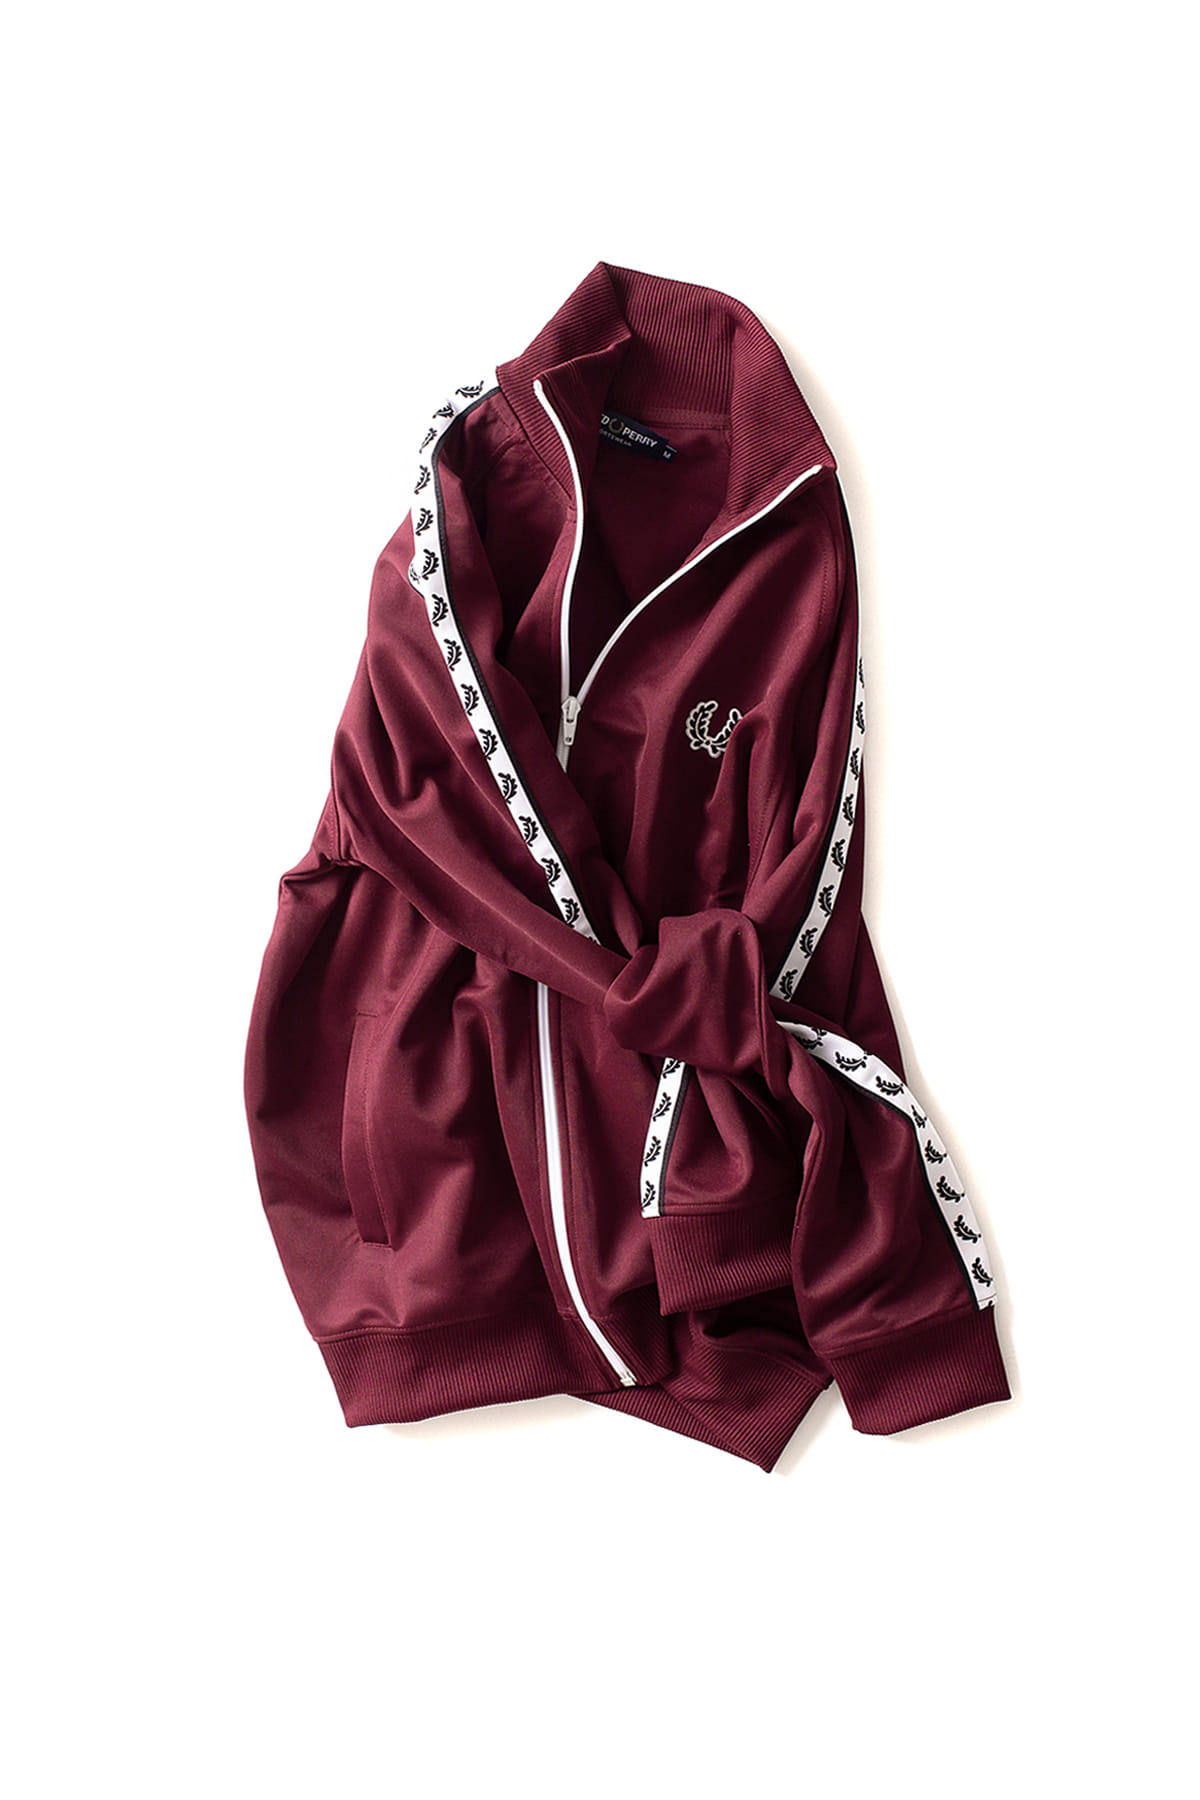 FRED PERRY : Taped Track Jacket (Tawny Port)